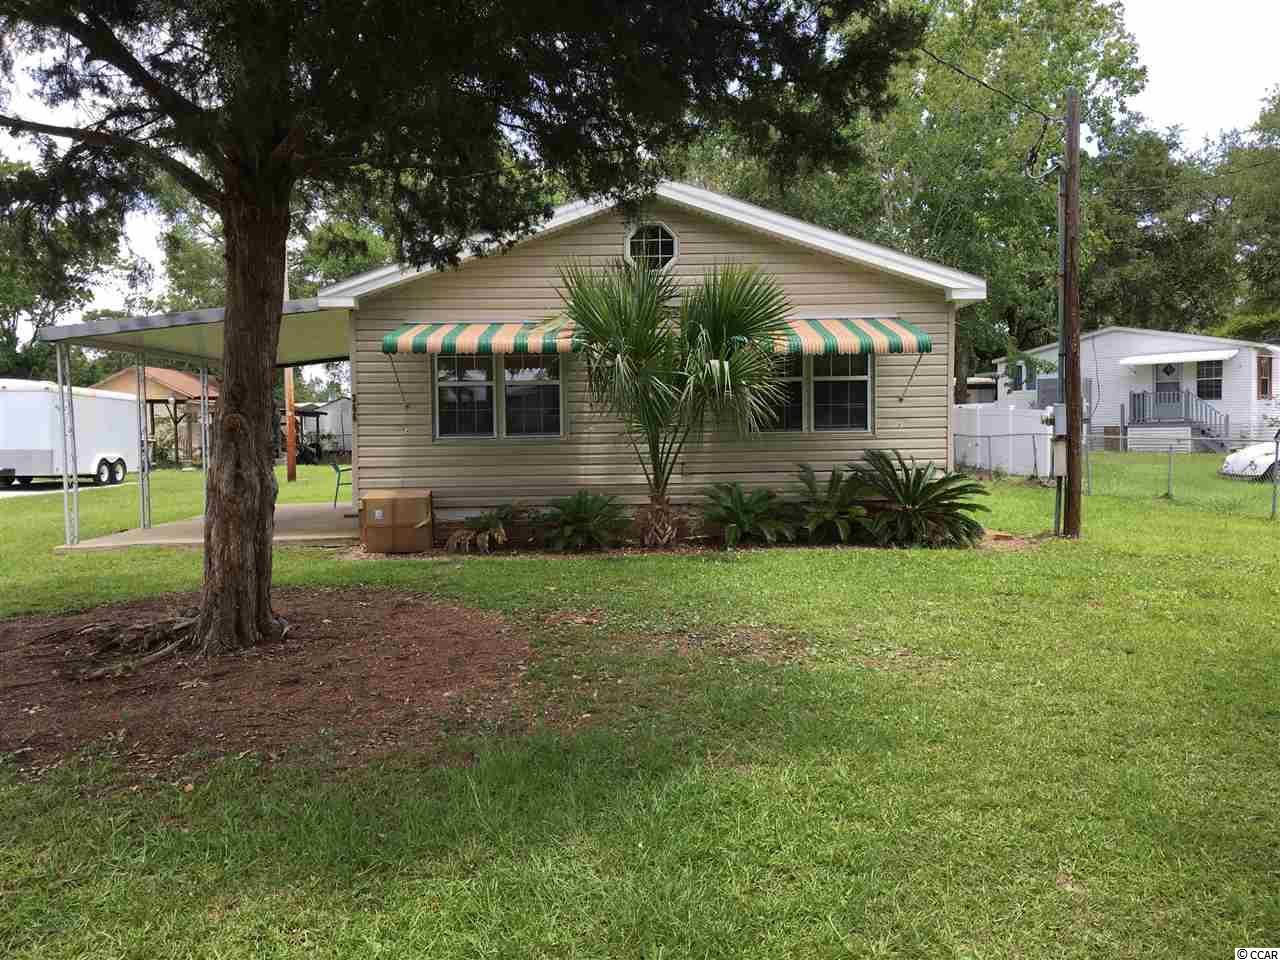 3 bedroom 2 bath mobile home with extra large lot measuring 75x174. Short walk to the beach. Large public access with parking for cars and golf carts. Home has been remodeled with new flooring, freshly painted, and has furniture and appliances that will convey making it move in ready. Enjoy what Garden City has to offer by owning a home of your own. Rentals are allowed in the area.